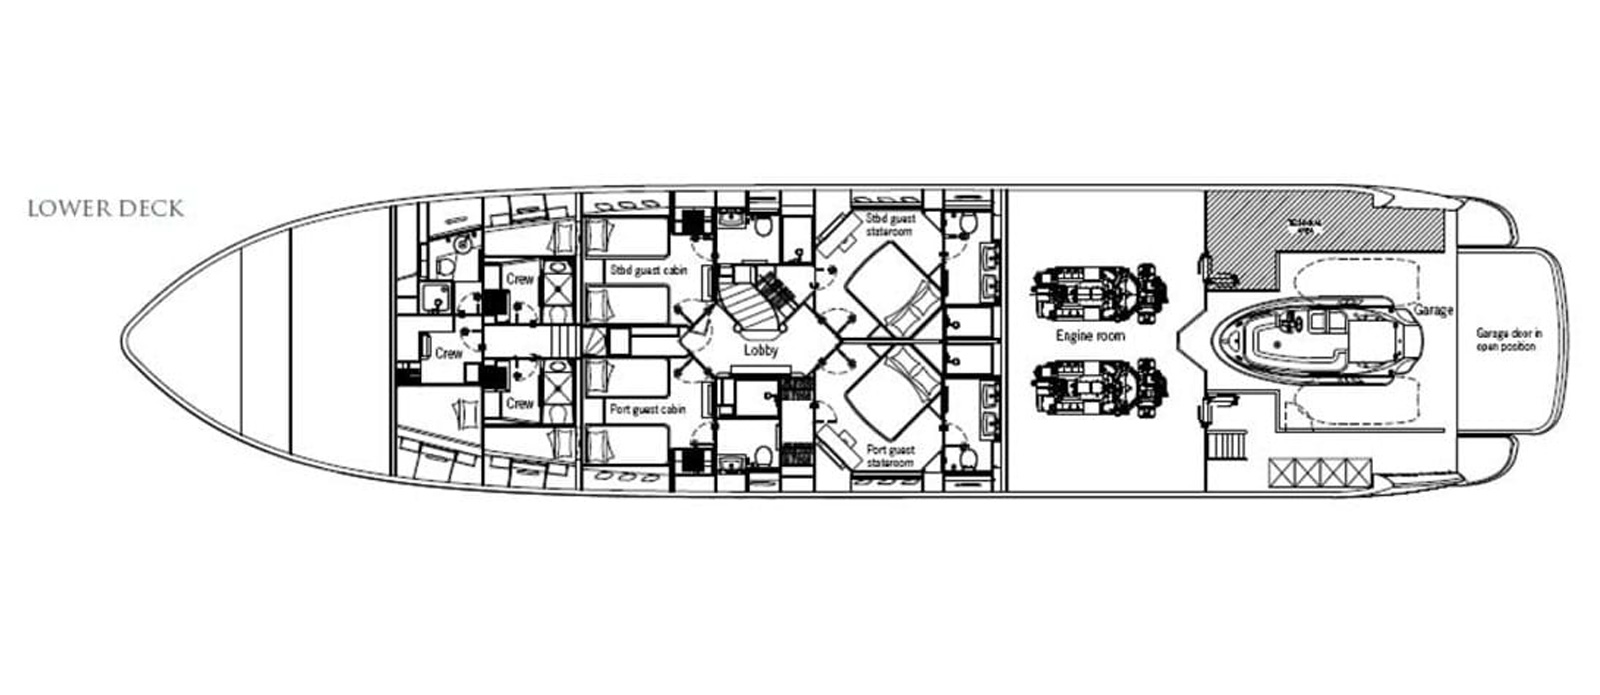 Frivolous - Lower Deck Layout